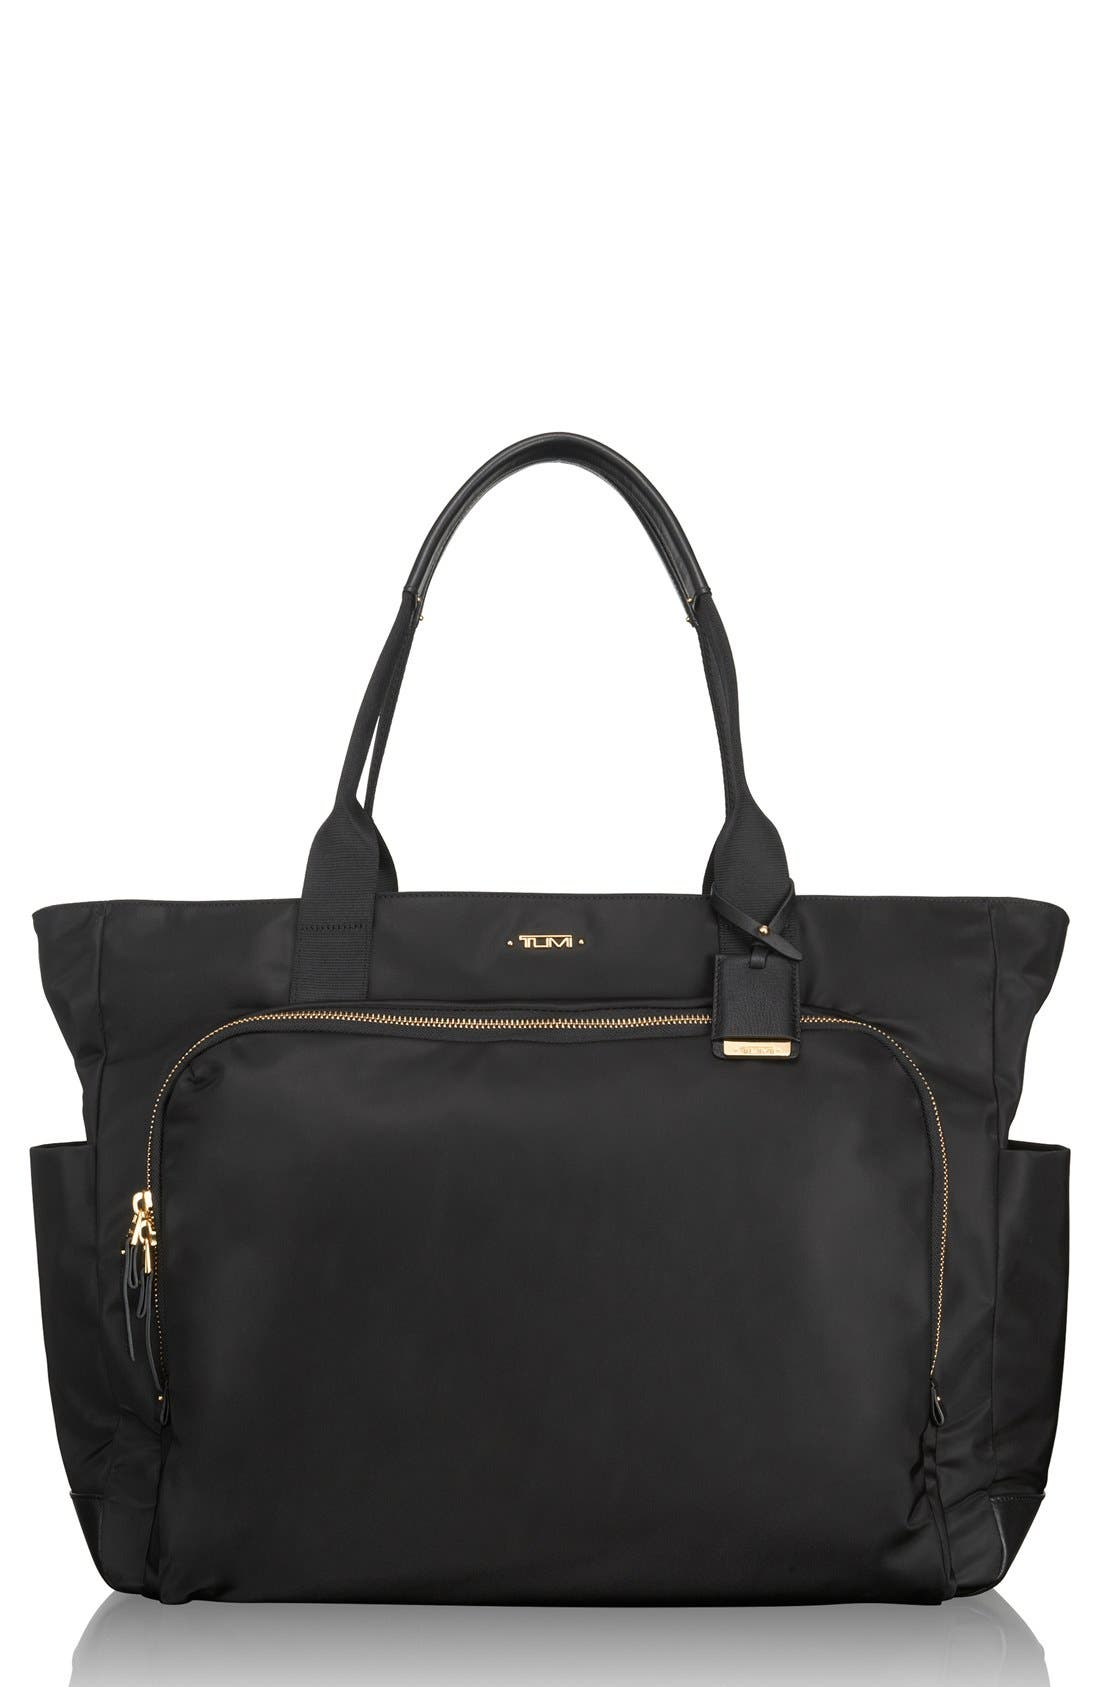 Alternate Image 1 Selected - Tumi 'Mansion' Shoulder Tote/Baby Bag